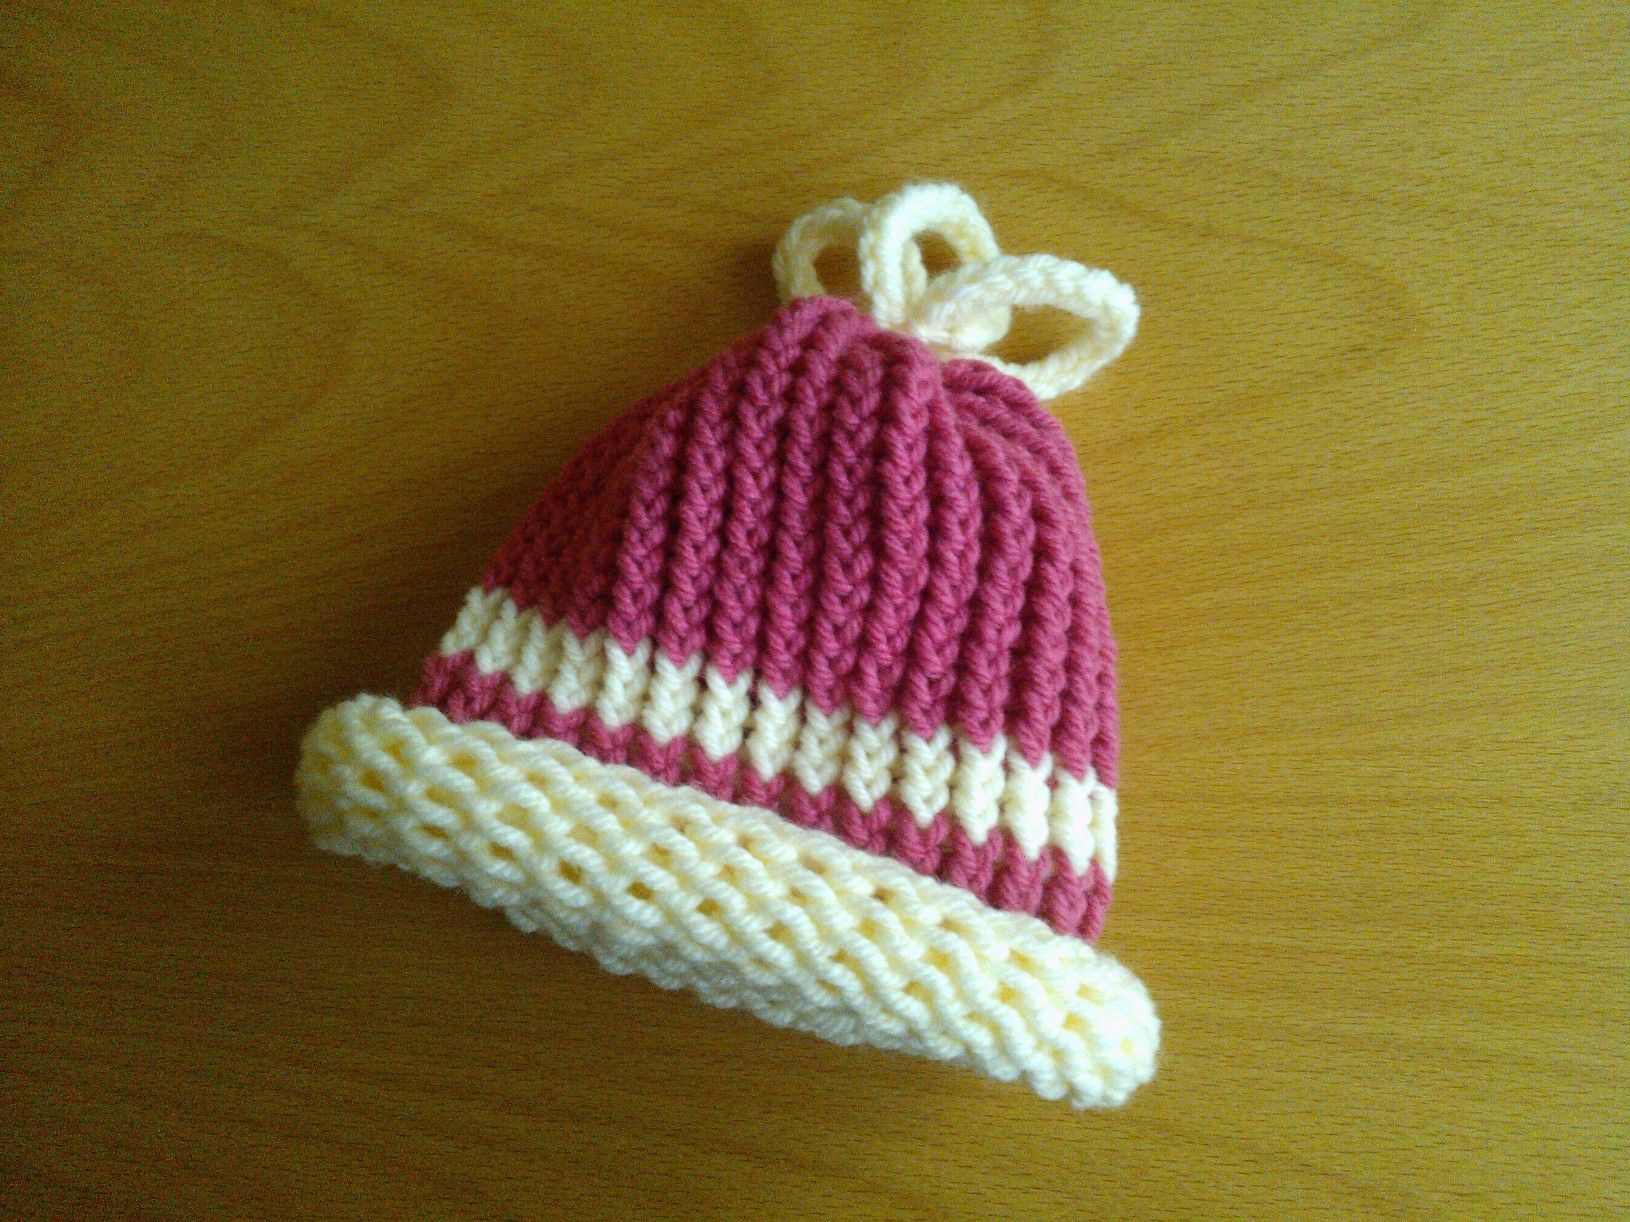 Knitting Loom Patterns Baby Hats : Another baby loom knit hat LOOM 13 Pinterest